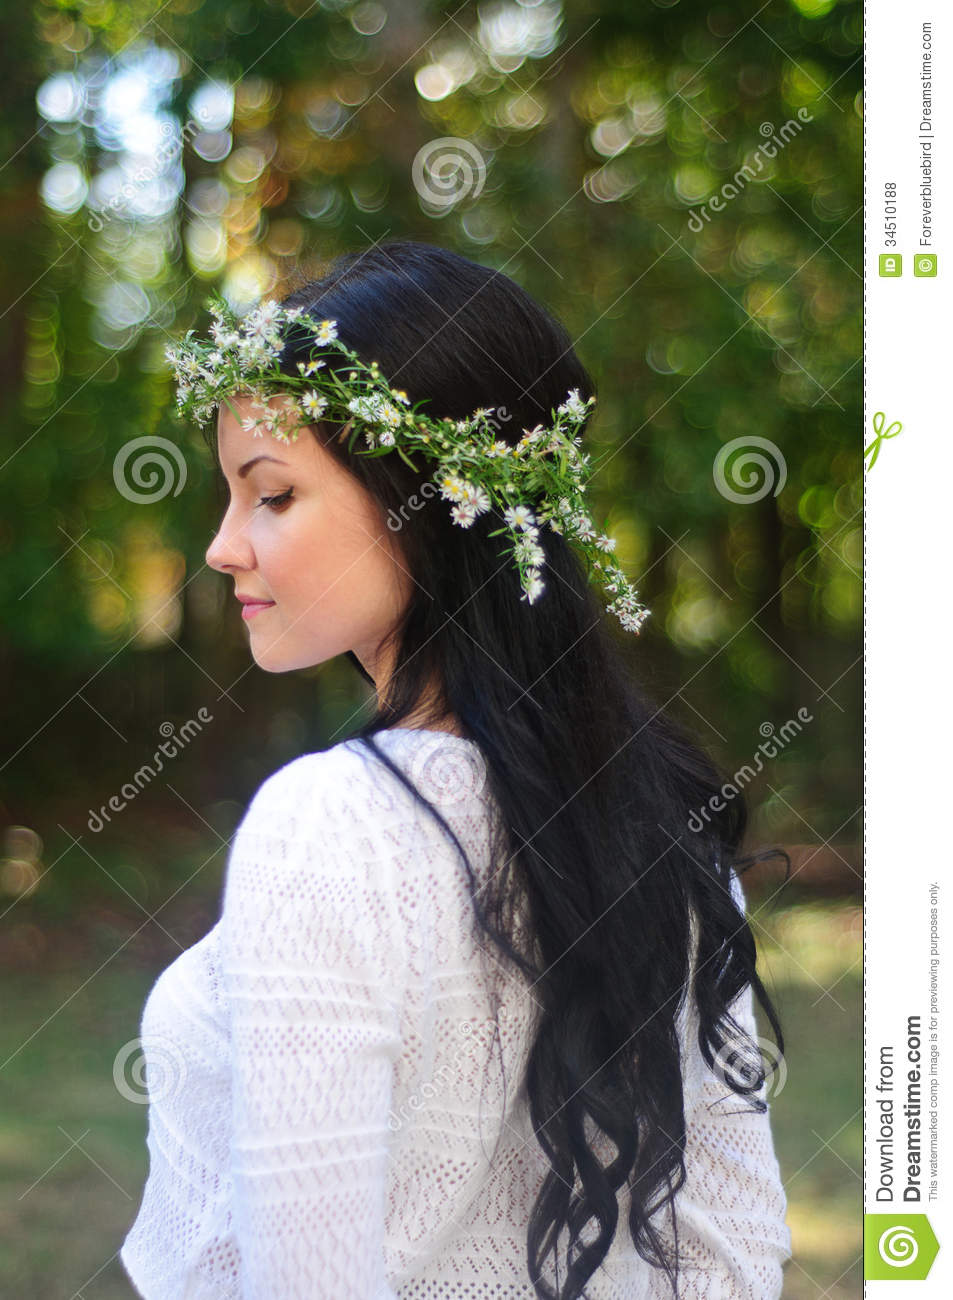 Portrait of a young woman with long black hair and flower crown portrait of a young woman with long black hair and flower crown stock photo 34510188 megapixl izmirmasajfo